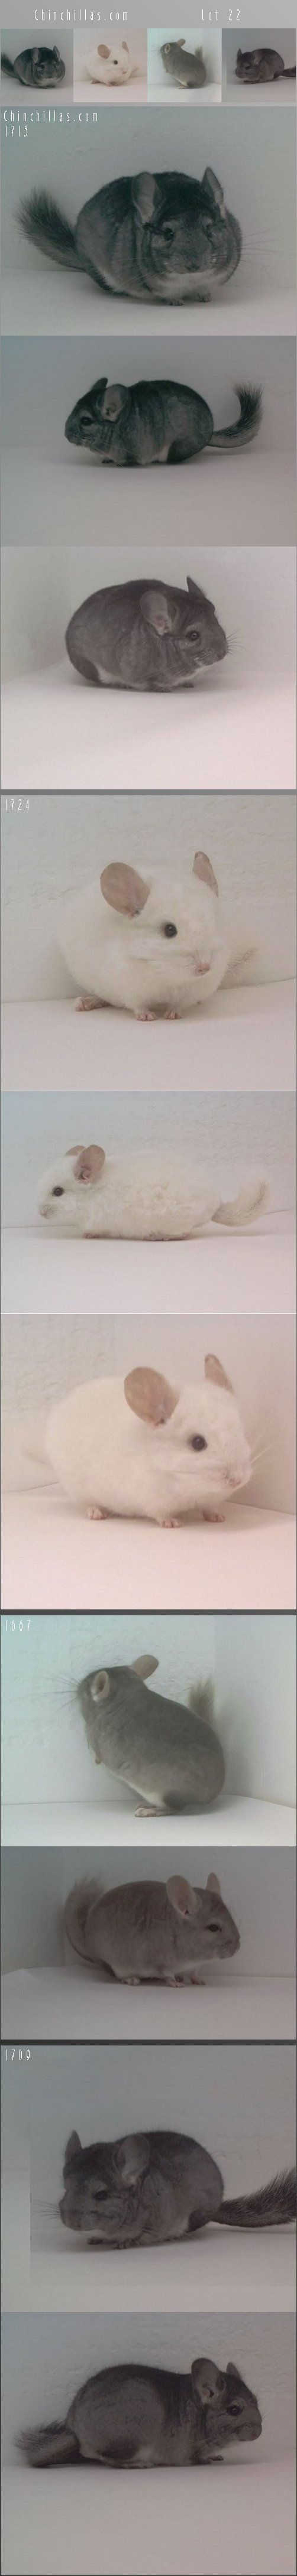 Lot 22 Miniature Breeder's Foundation Lot Chinchilla